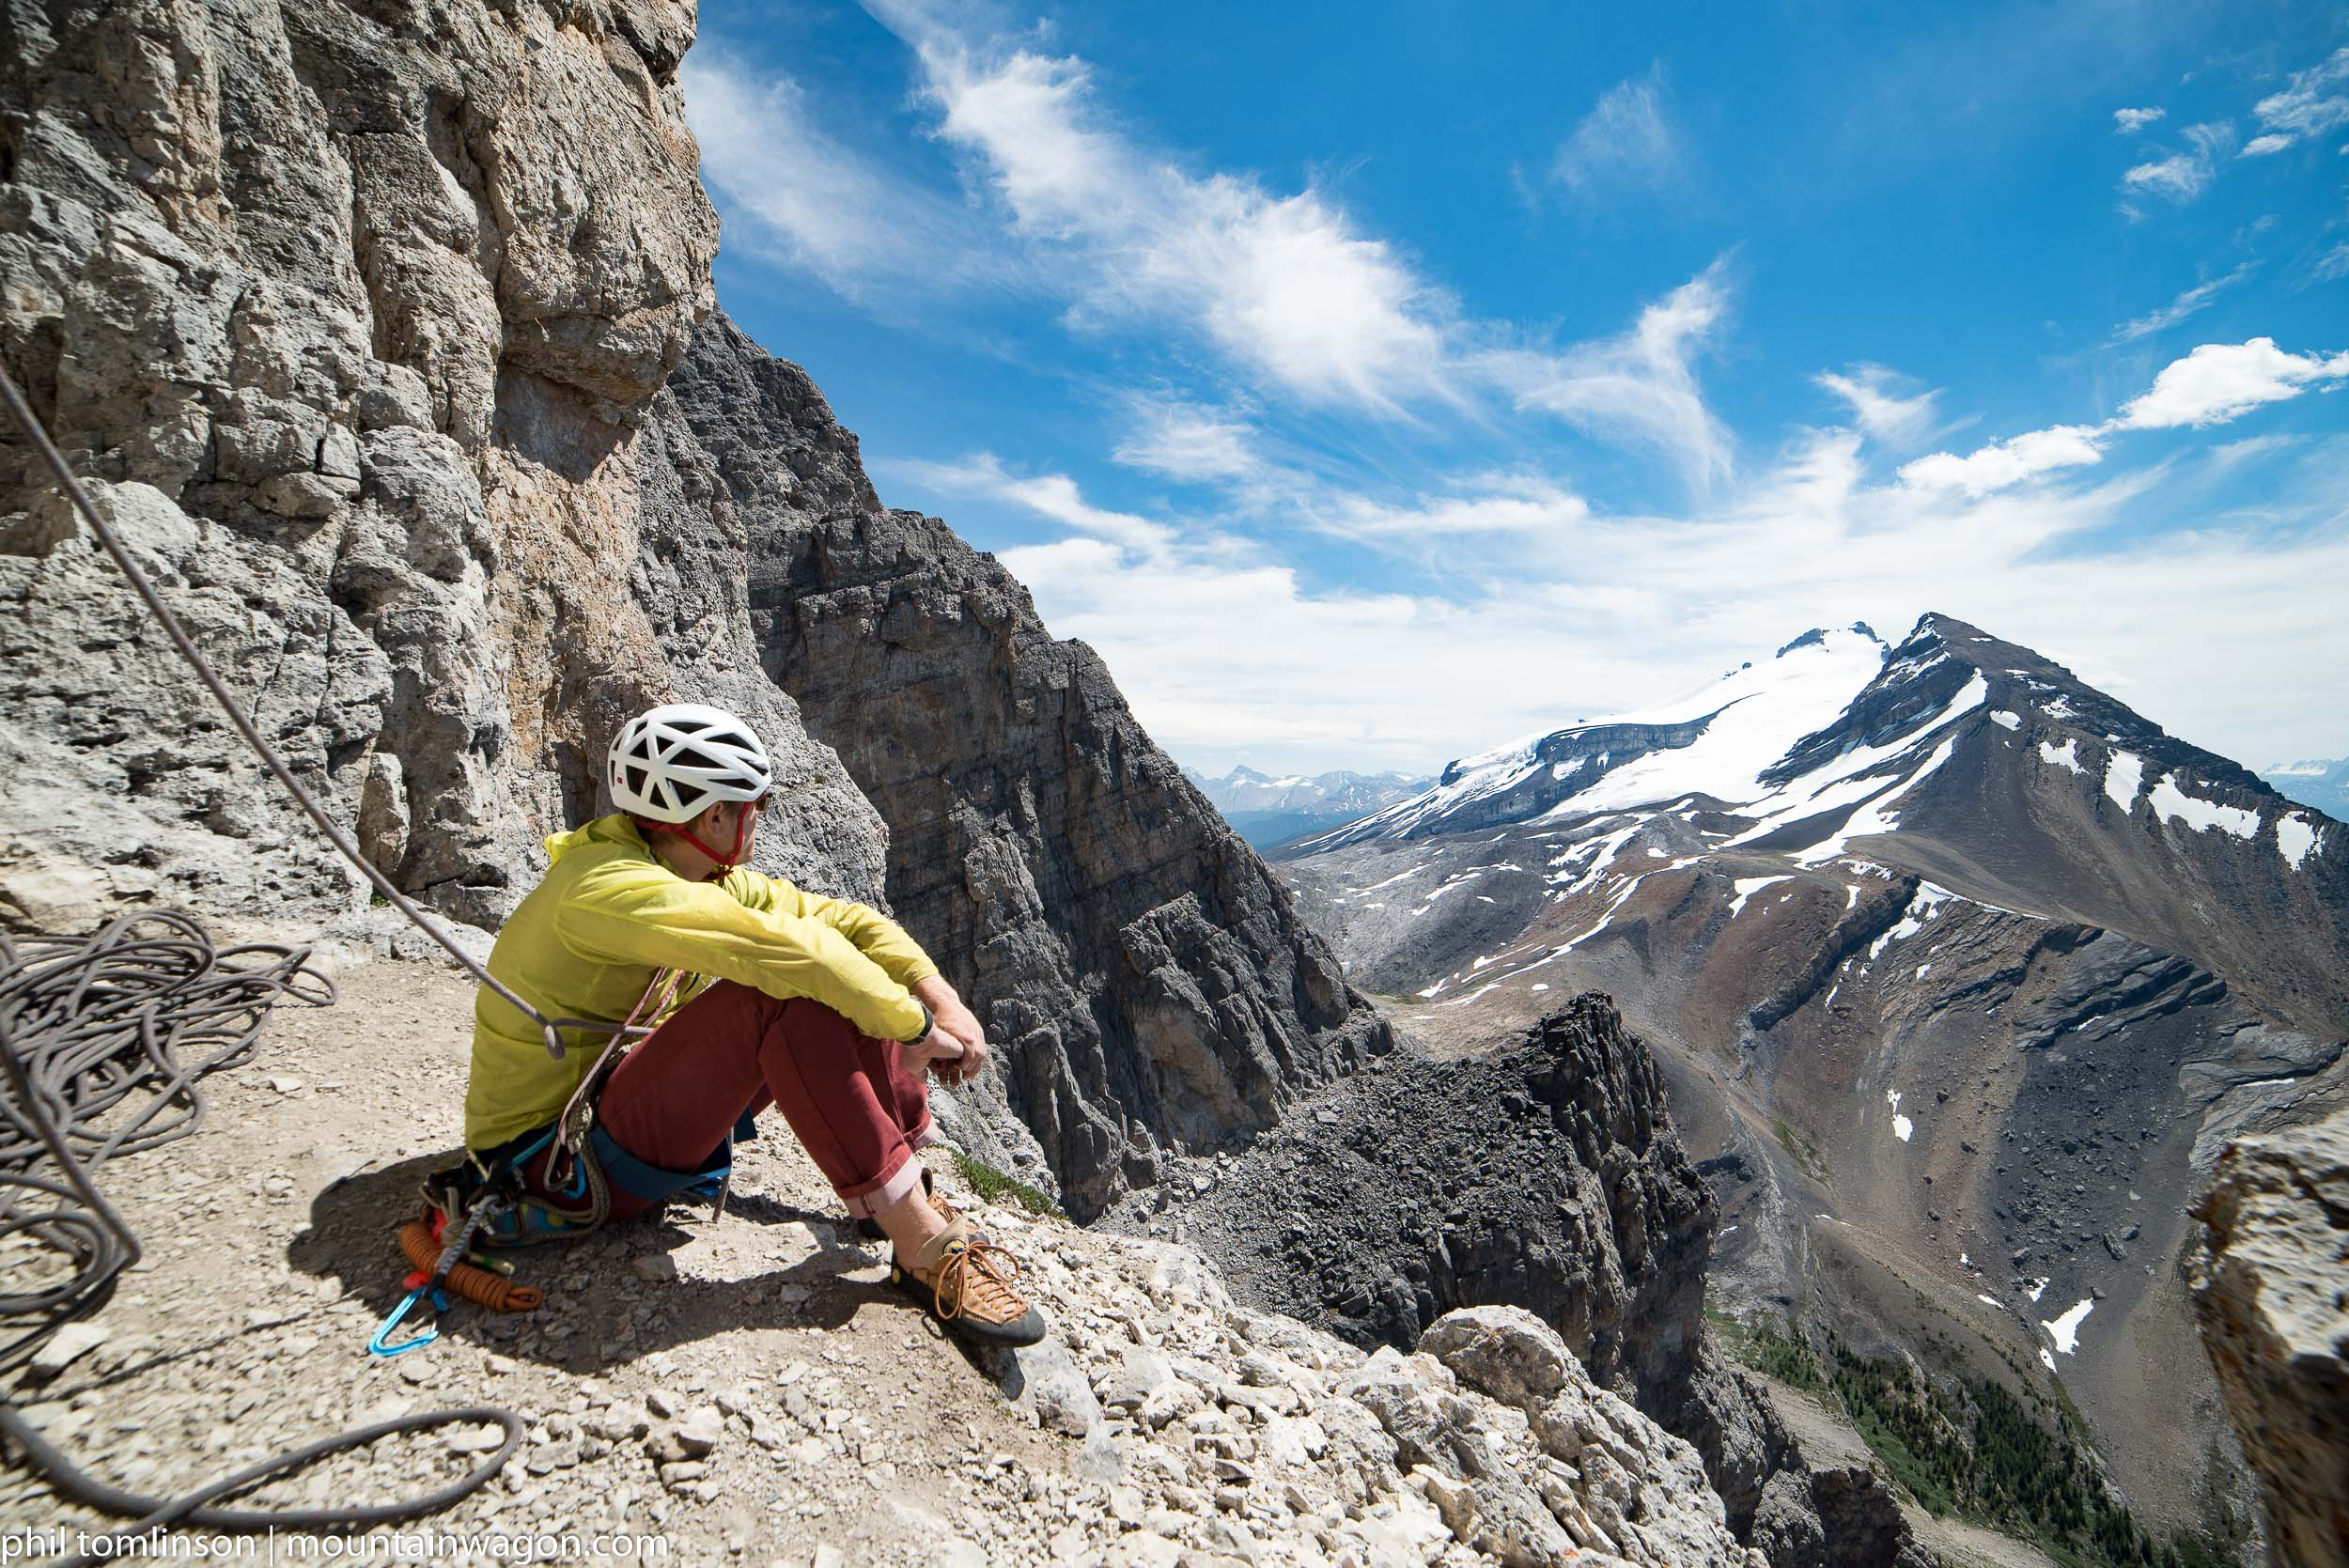 If you're going to kill time on route - a big old belay ledge and incredible views is a pretty nice way to do it...